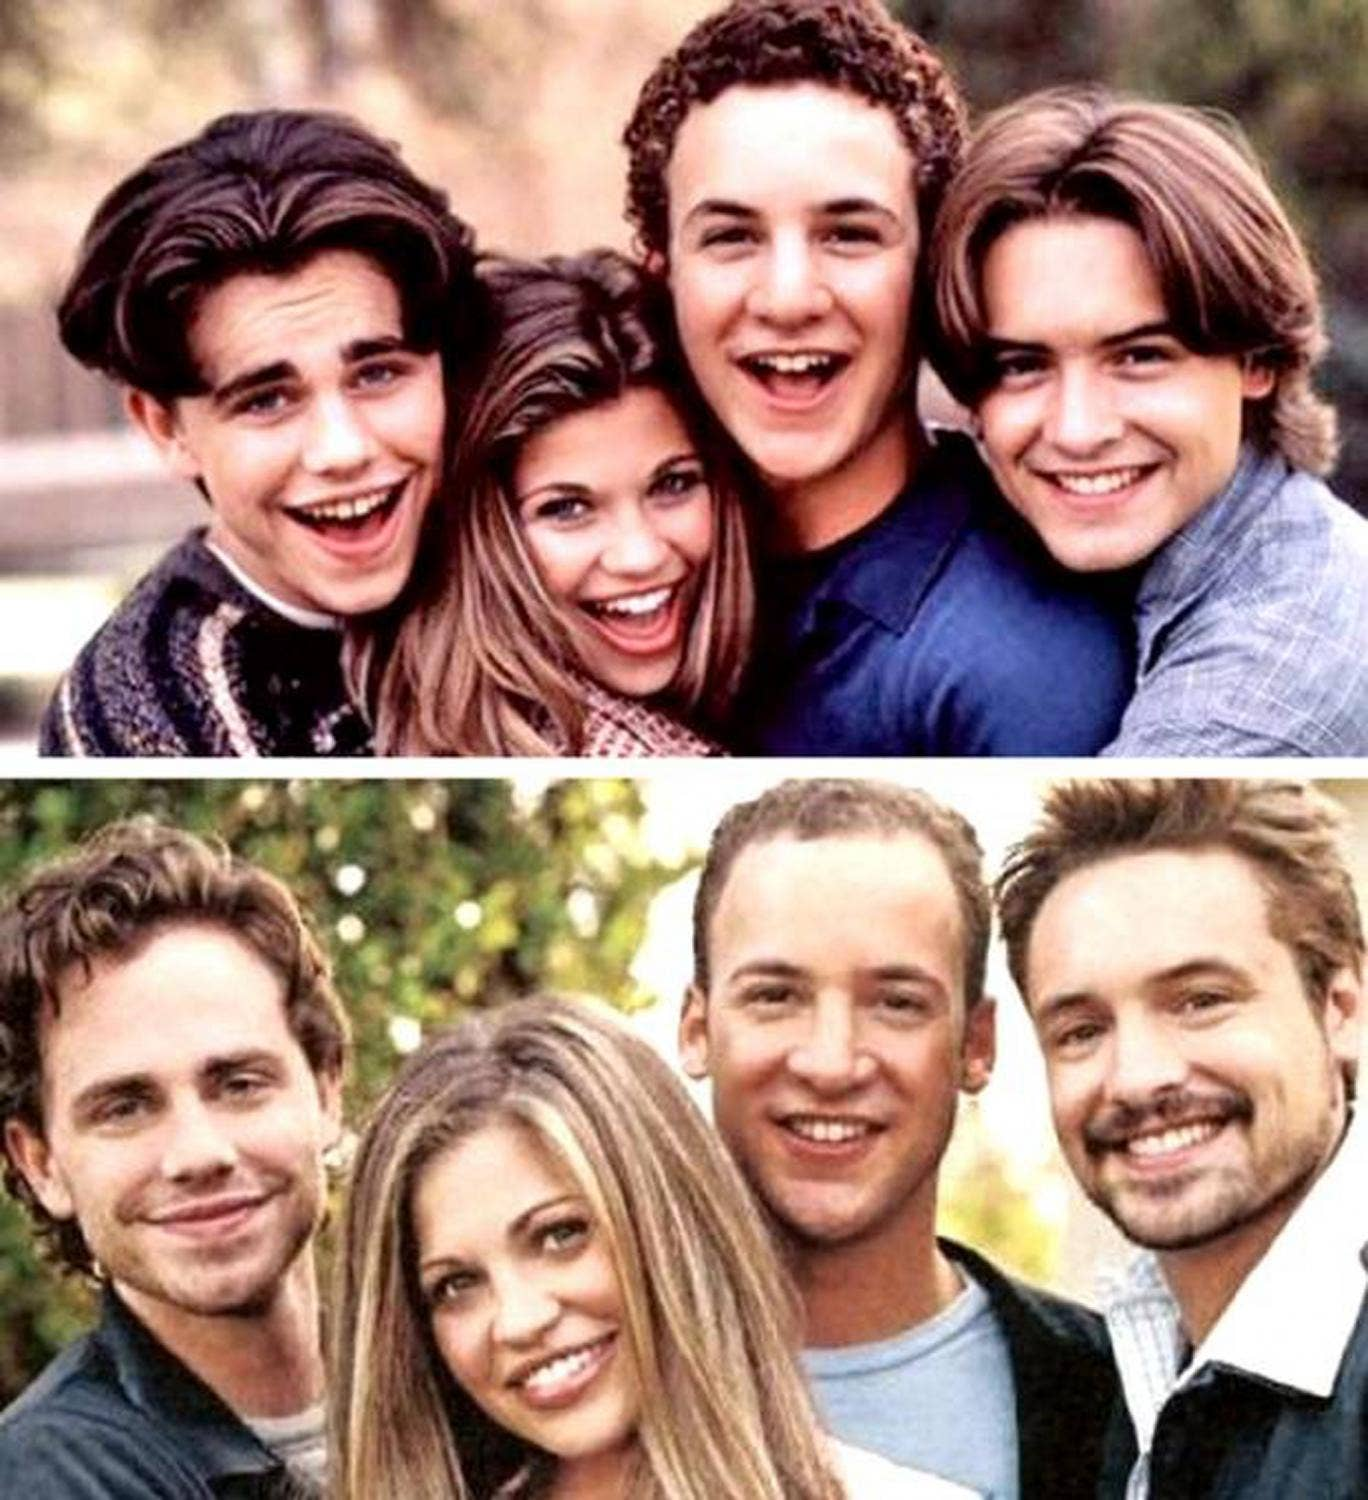 Then and now: (Top) 'Boy Meets World'; (Bottom) 'Girl Meets World'